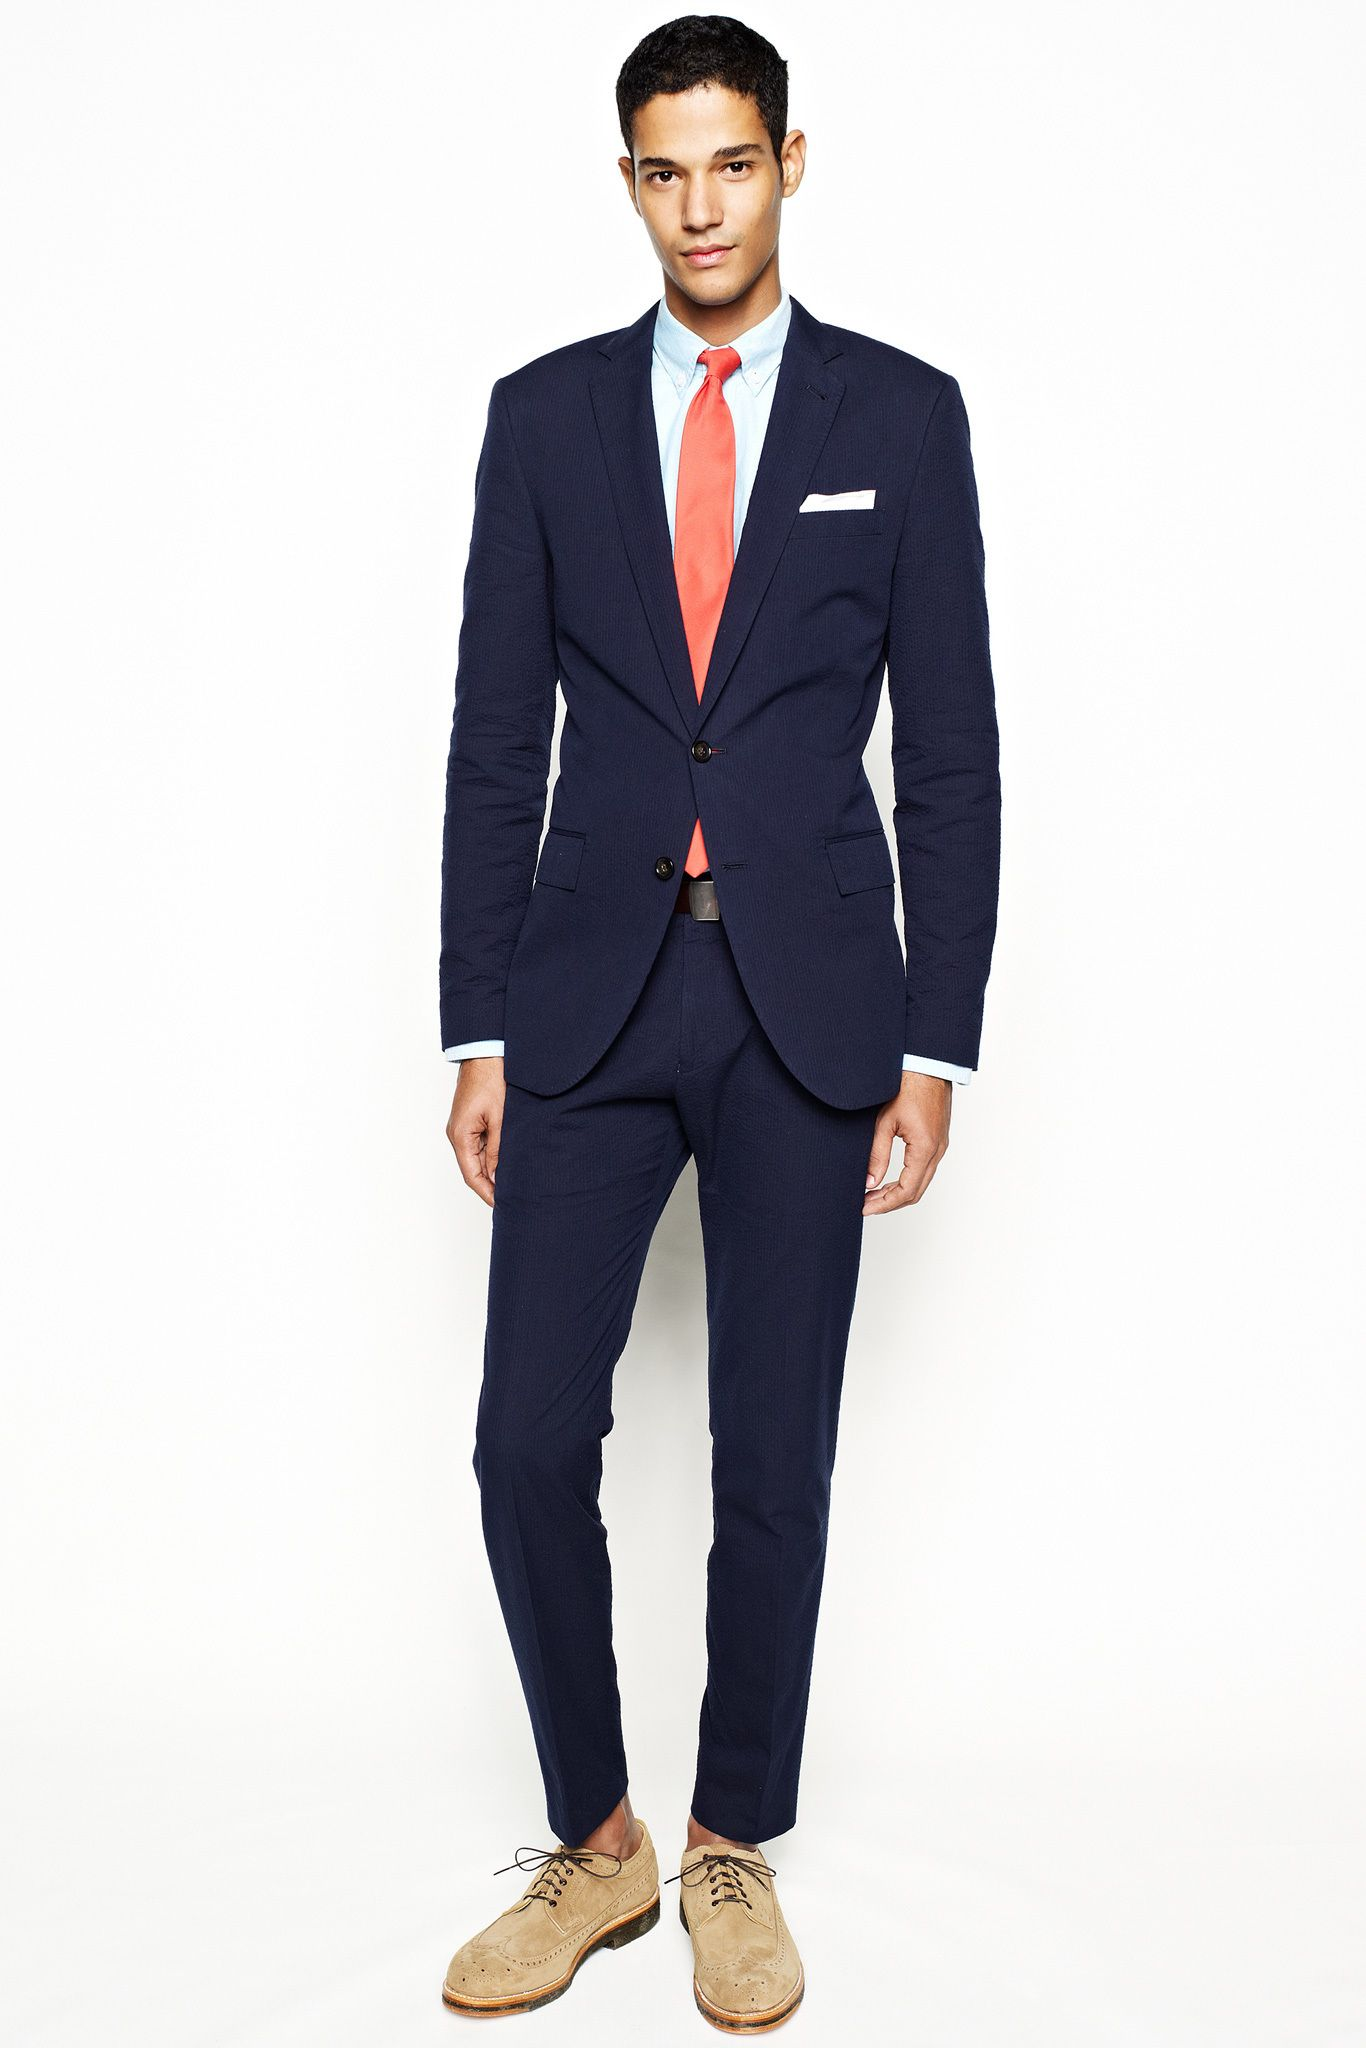 J.Crew Spring 2013 Menswear Collection Slideshow on Style.com